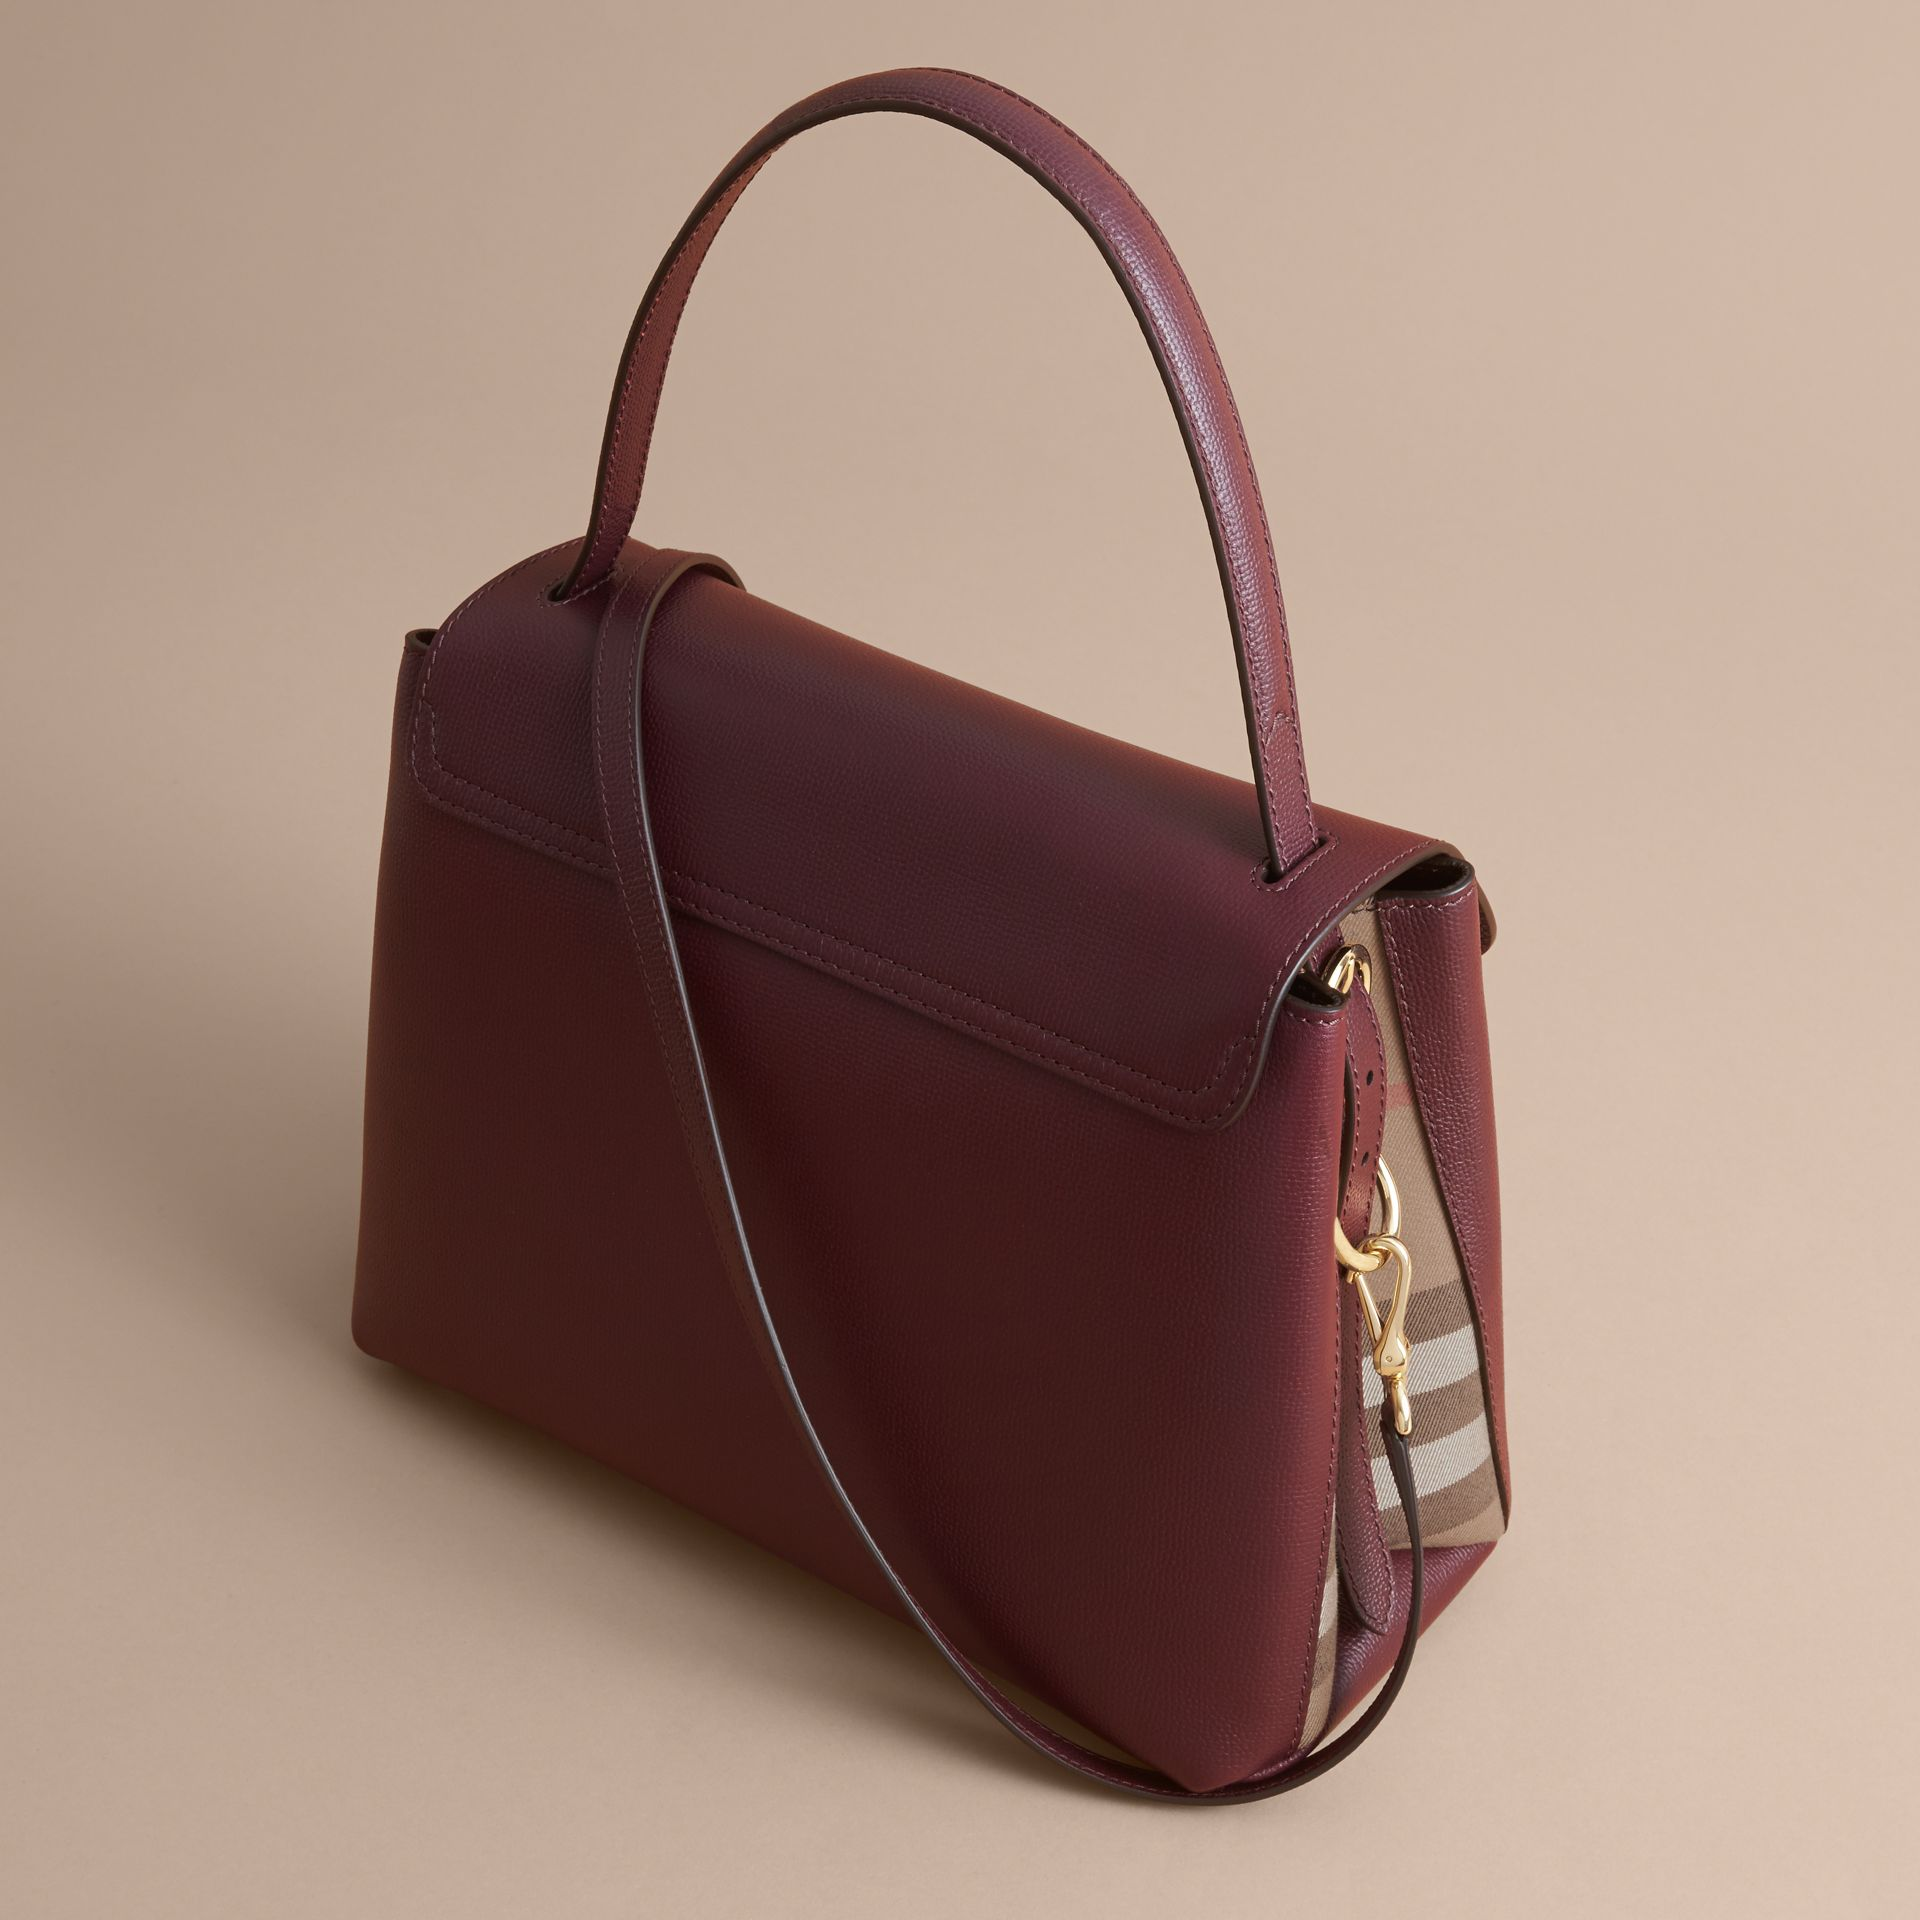 Medium Grainy Leather and House Check Tote Bag in Mahogany Red - Women | Burberry Singapore - gallery image 5